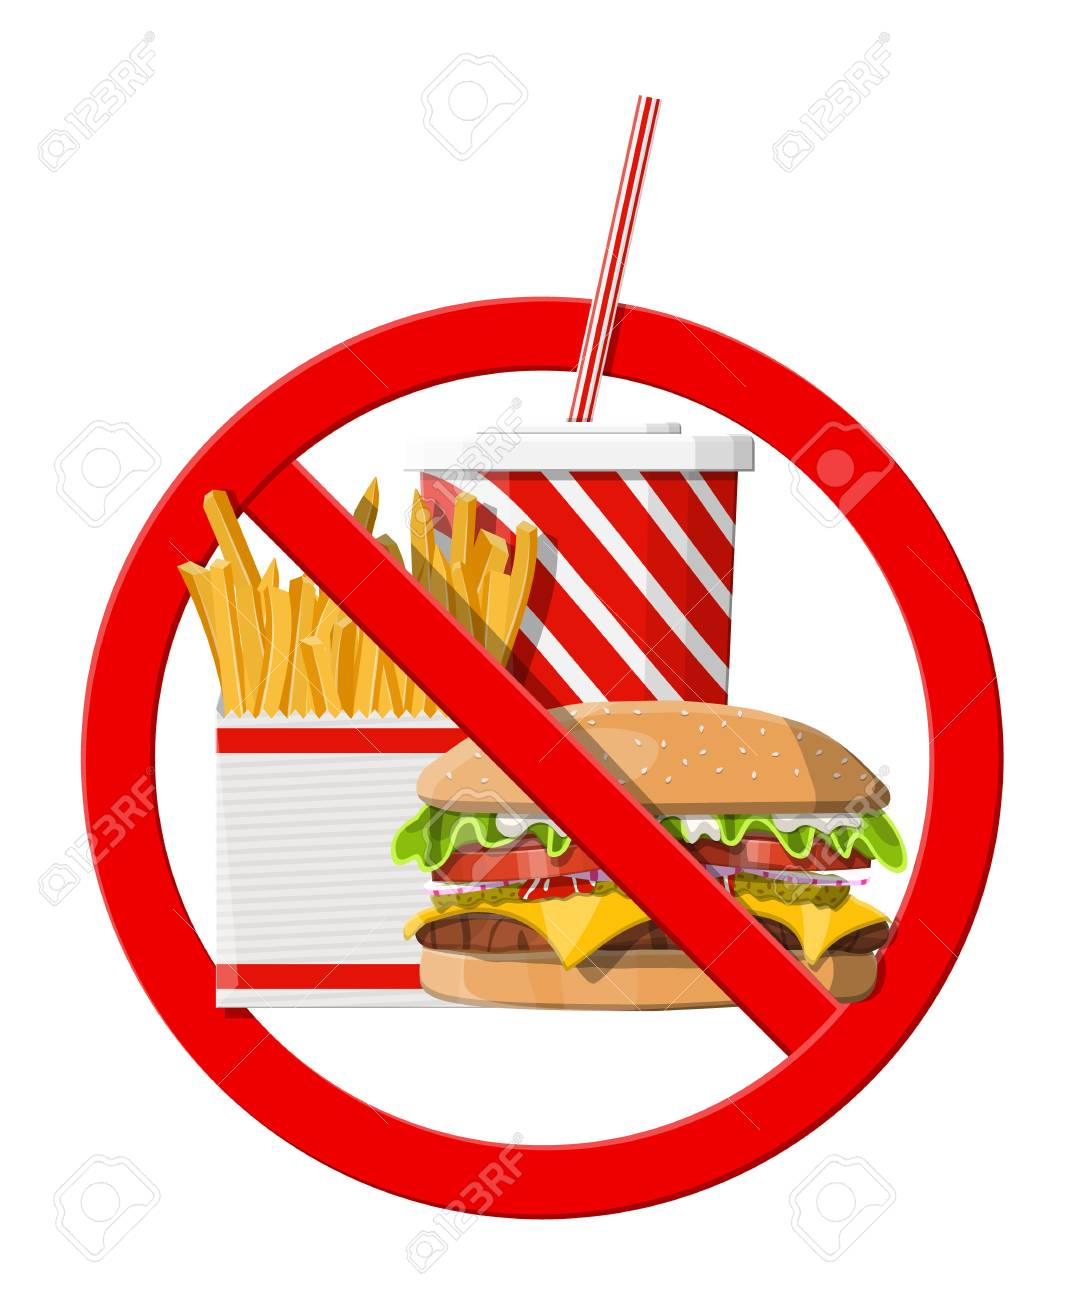 No fast food allowed. Rejecting junk food, snacks. Fat, overweight.